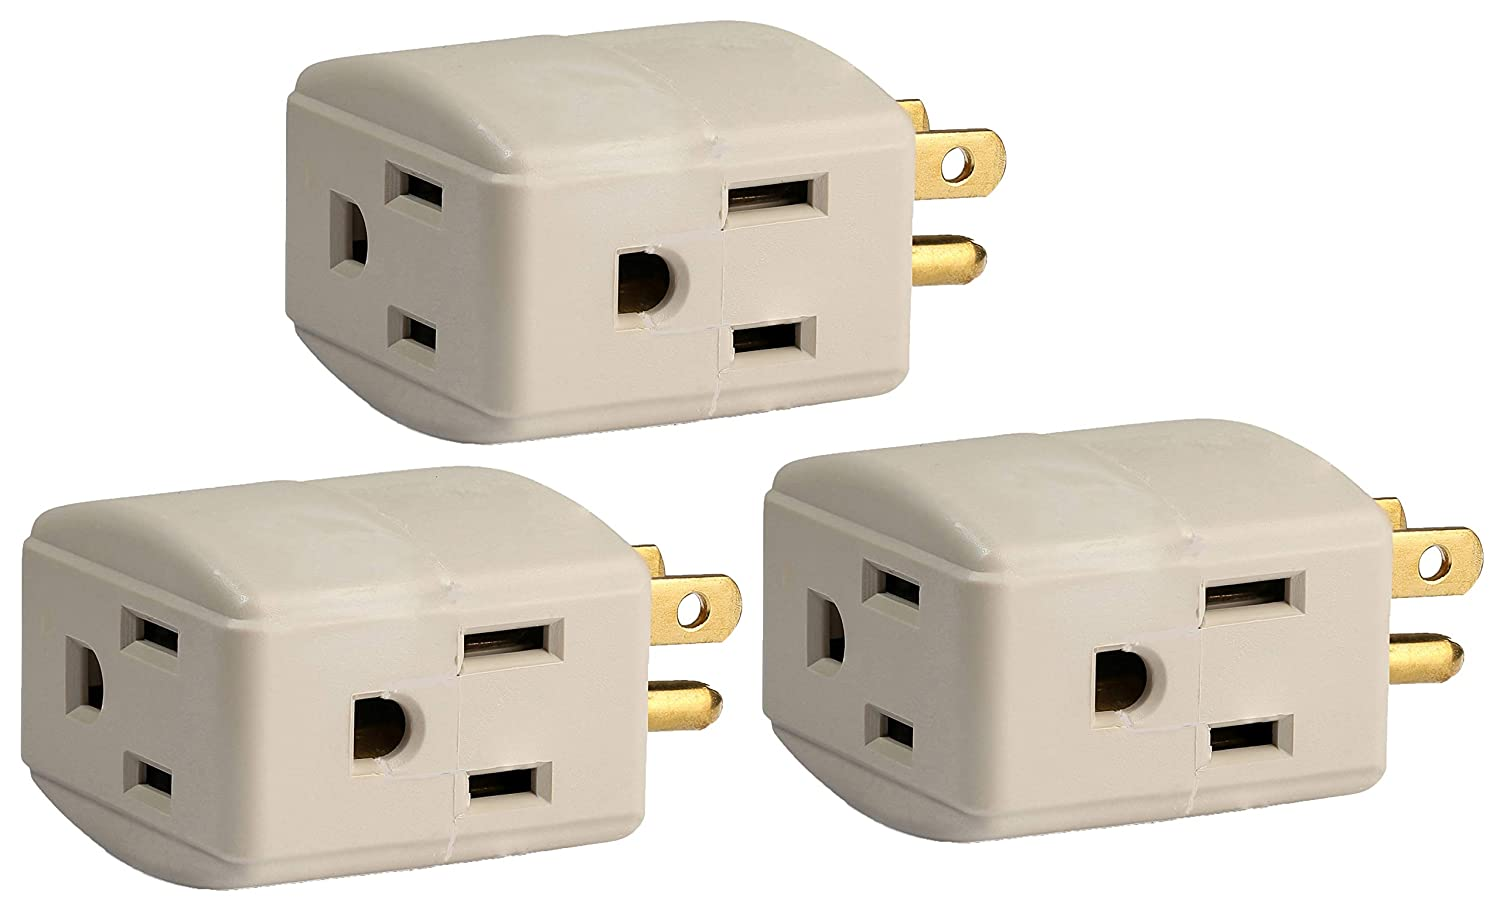 3-Pack Grounded 3-Outlet Tap, 3-Outlet Wall Tap Grounding Adapter, Triple Cube, 15-Amp 125-Volt, ETL Listed, Color Light Gray.